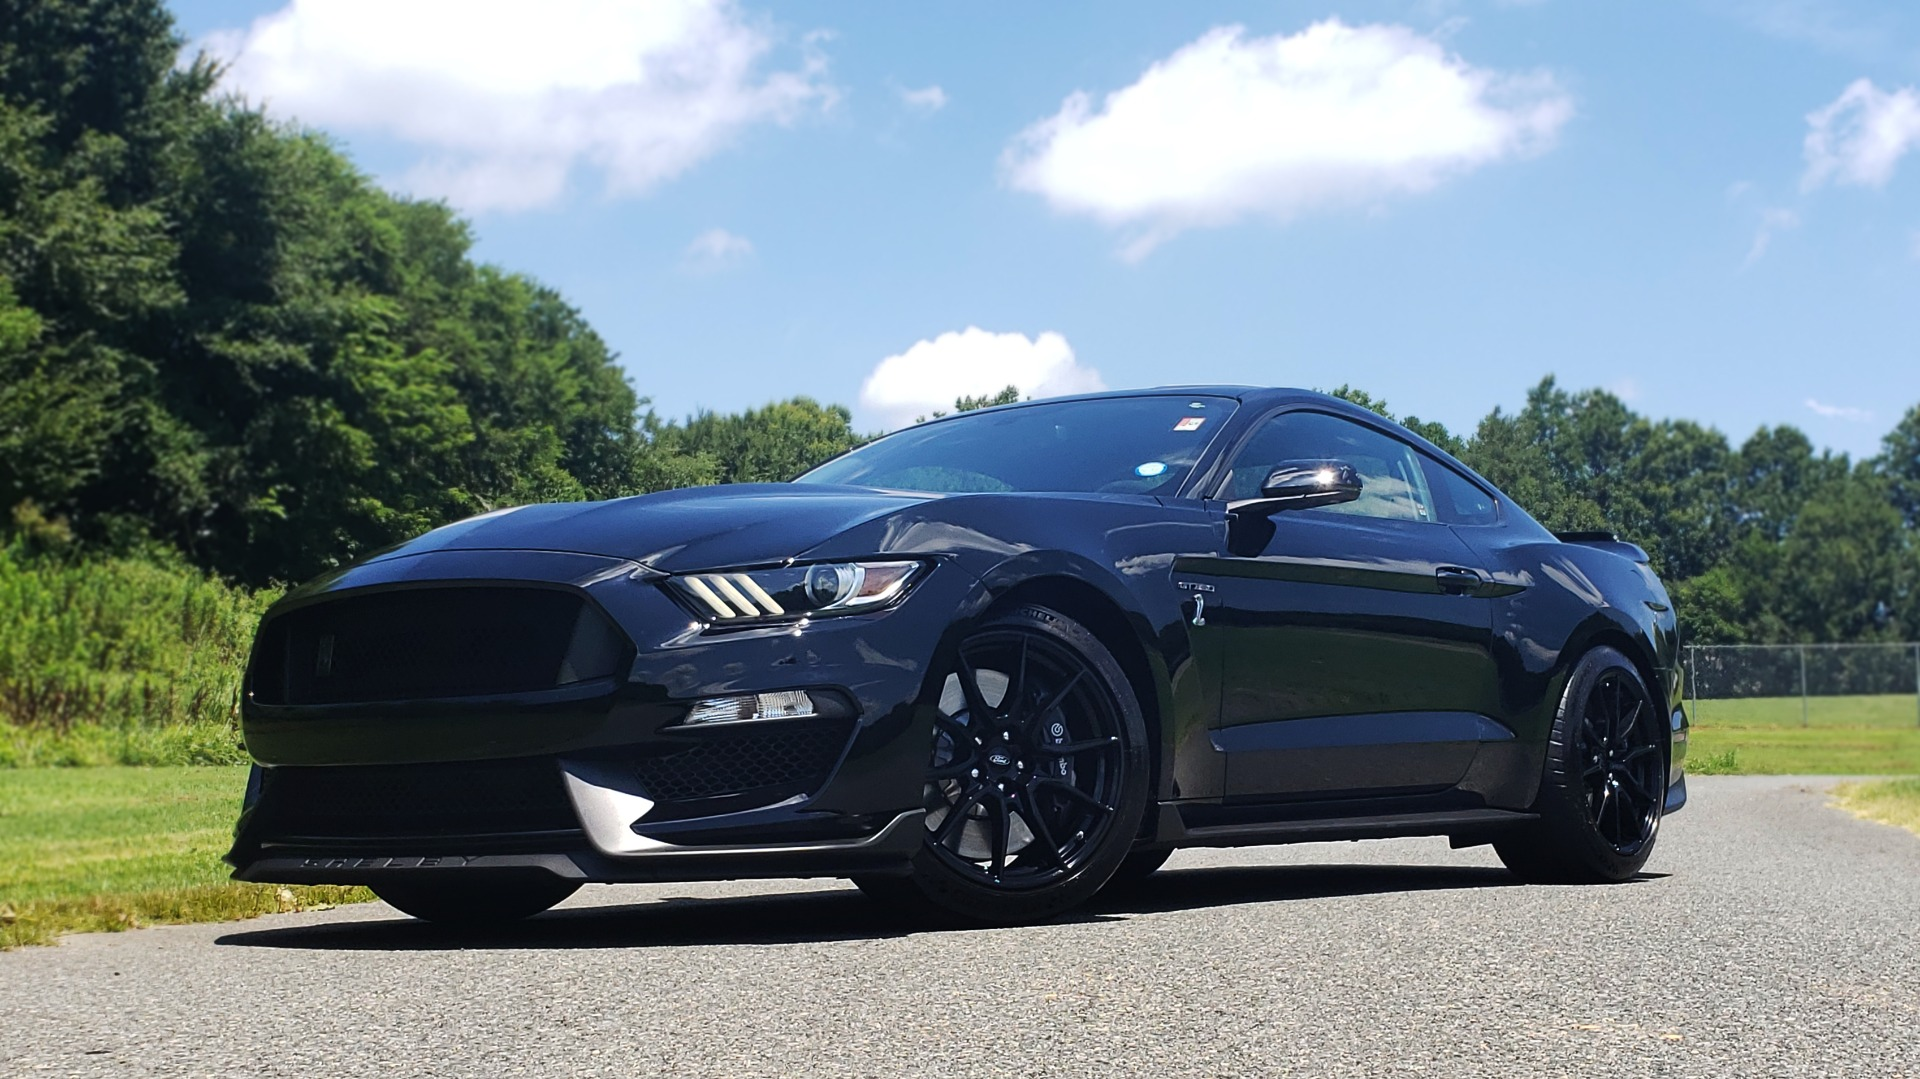 Used 2019 Ford MUSTANG SHELBY GT350 COUPE / TECH PKG / B&O SND / NAV / HNDLNG PKG / REARVIEW for sale Sold at Formula Imports in Charlotte NC 28227 63